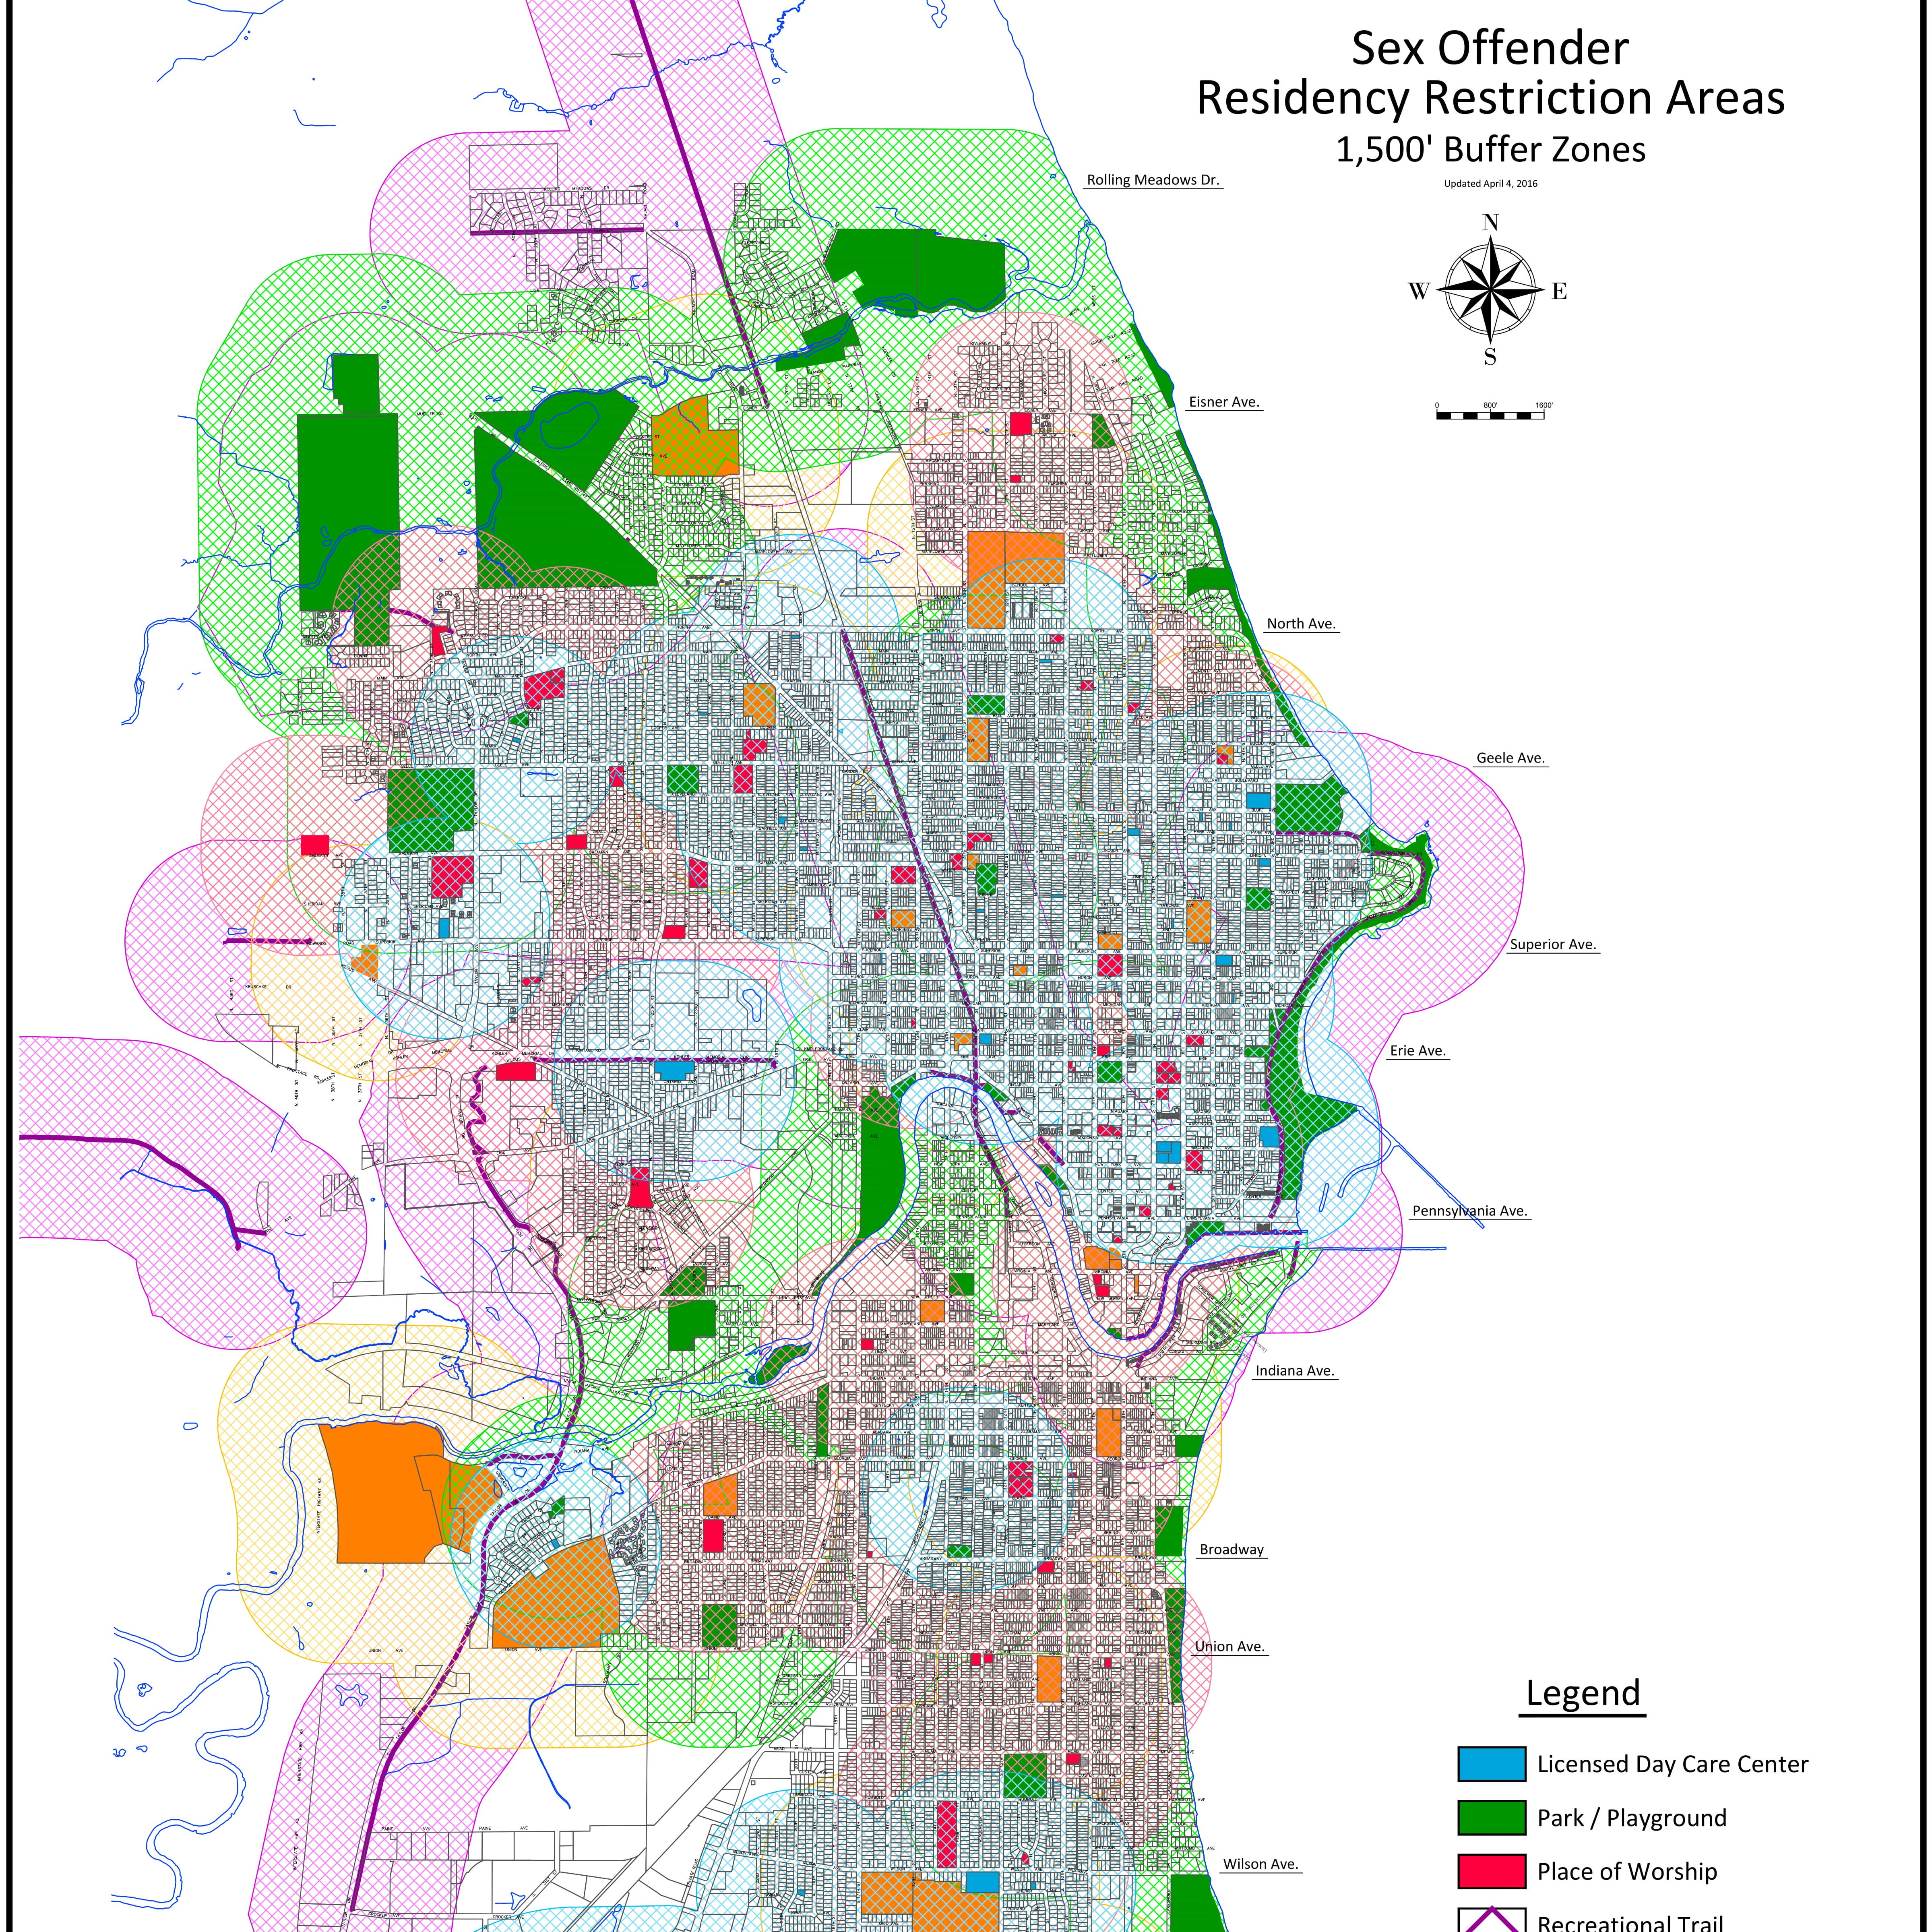 Sheboygan's Sex Offender Residency Restriction Areas map shows buffer zones around schools, day cares and other places from which sex offenders must live at least 1,500 feet. At 1,500 feet, there are few places where offenders could live to satisfy the distance requirement.